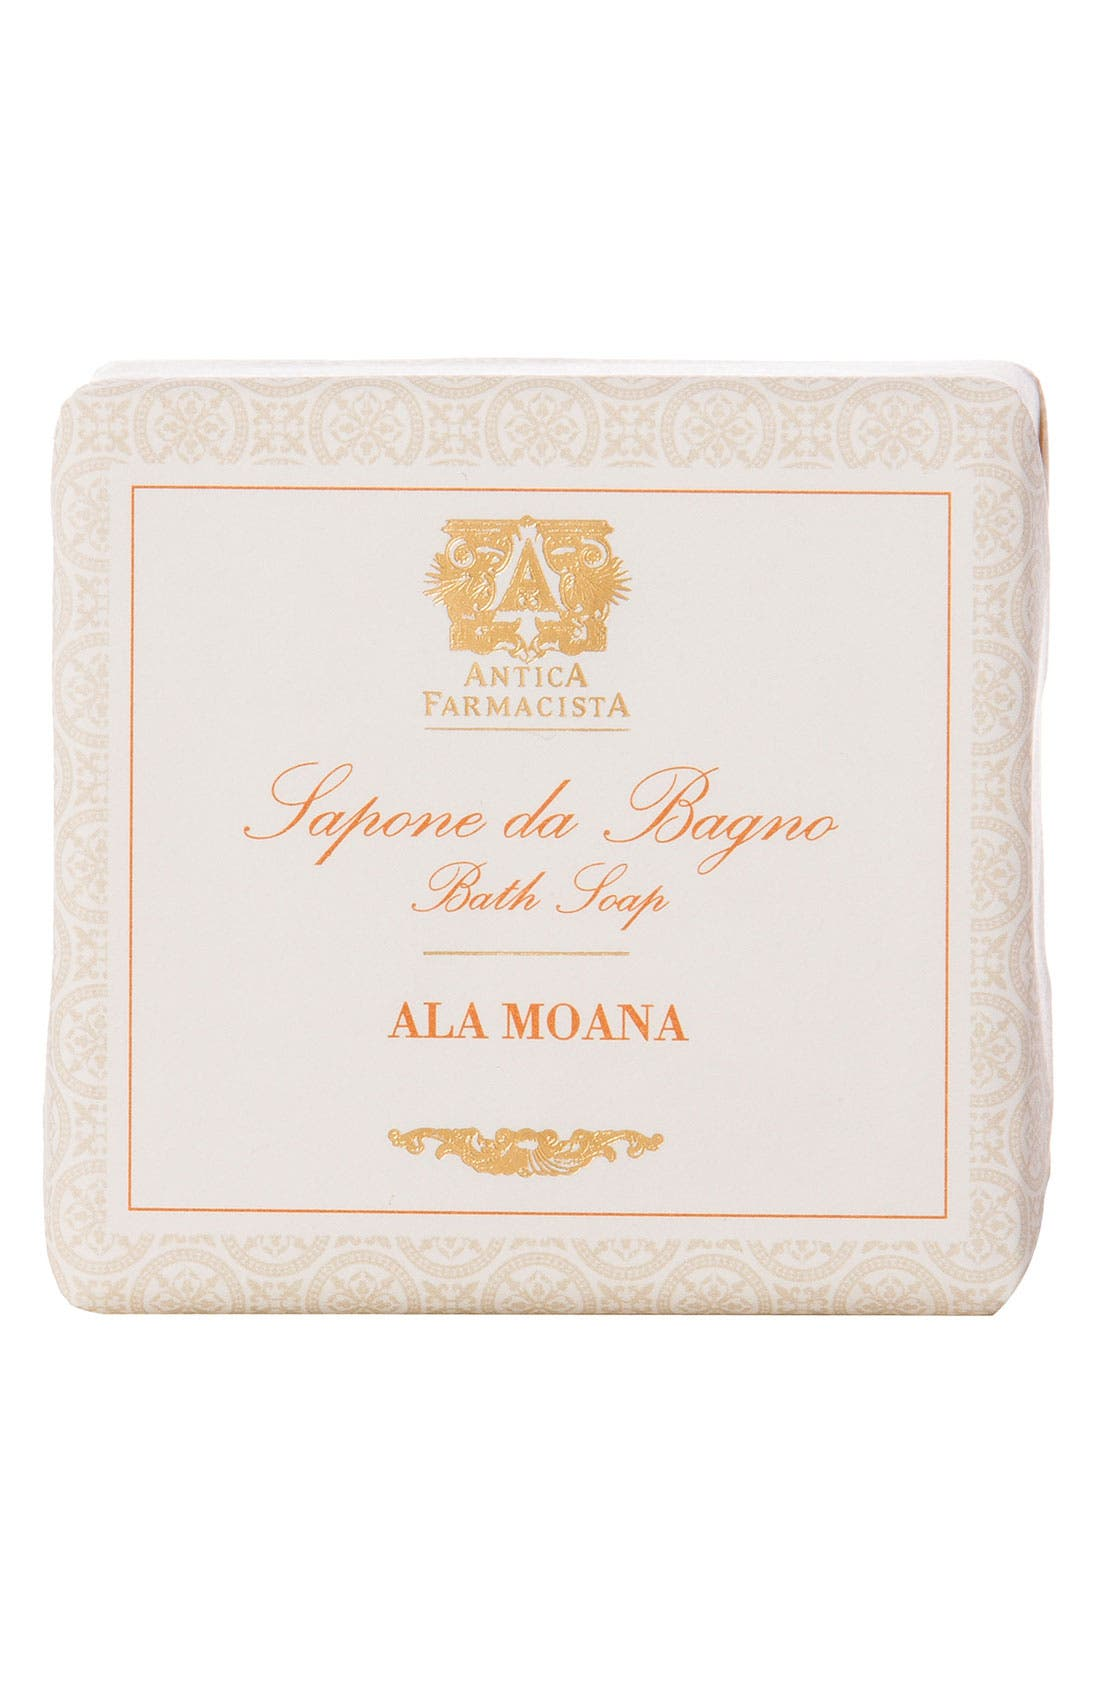 'Ala Moana' Bar Soap,                             Main thumbnail 1, color,                             000